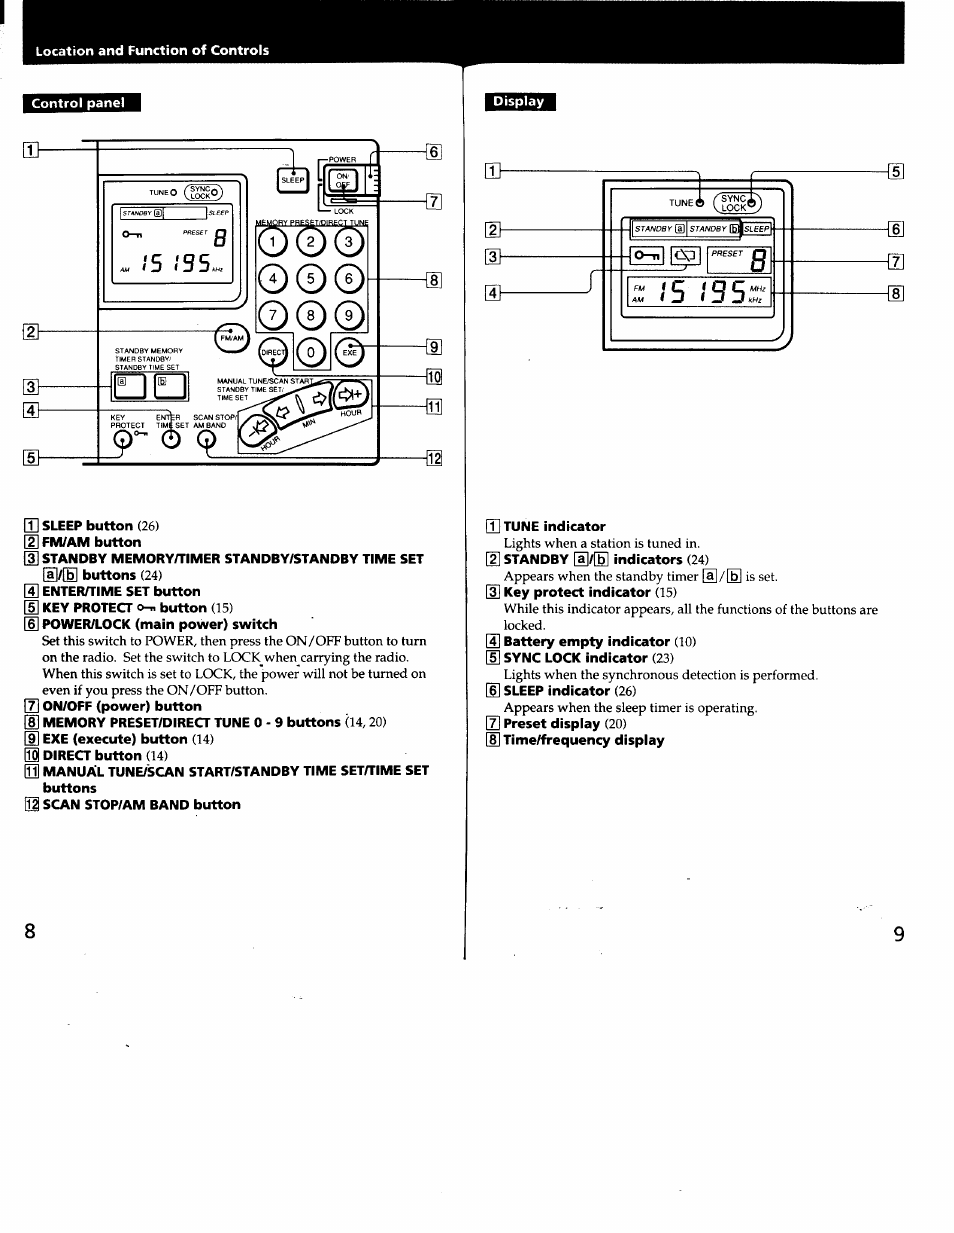 Location and function of controls, Control panel, Sleep